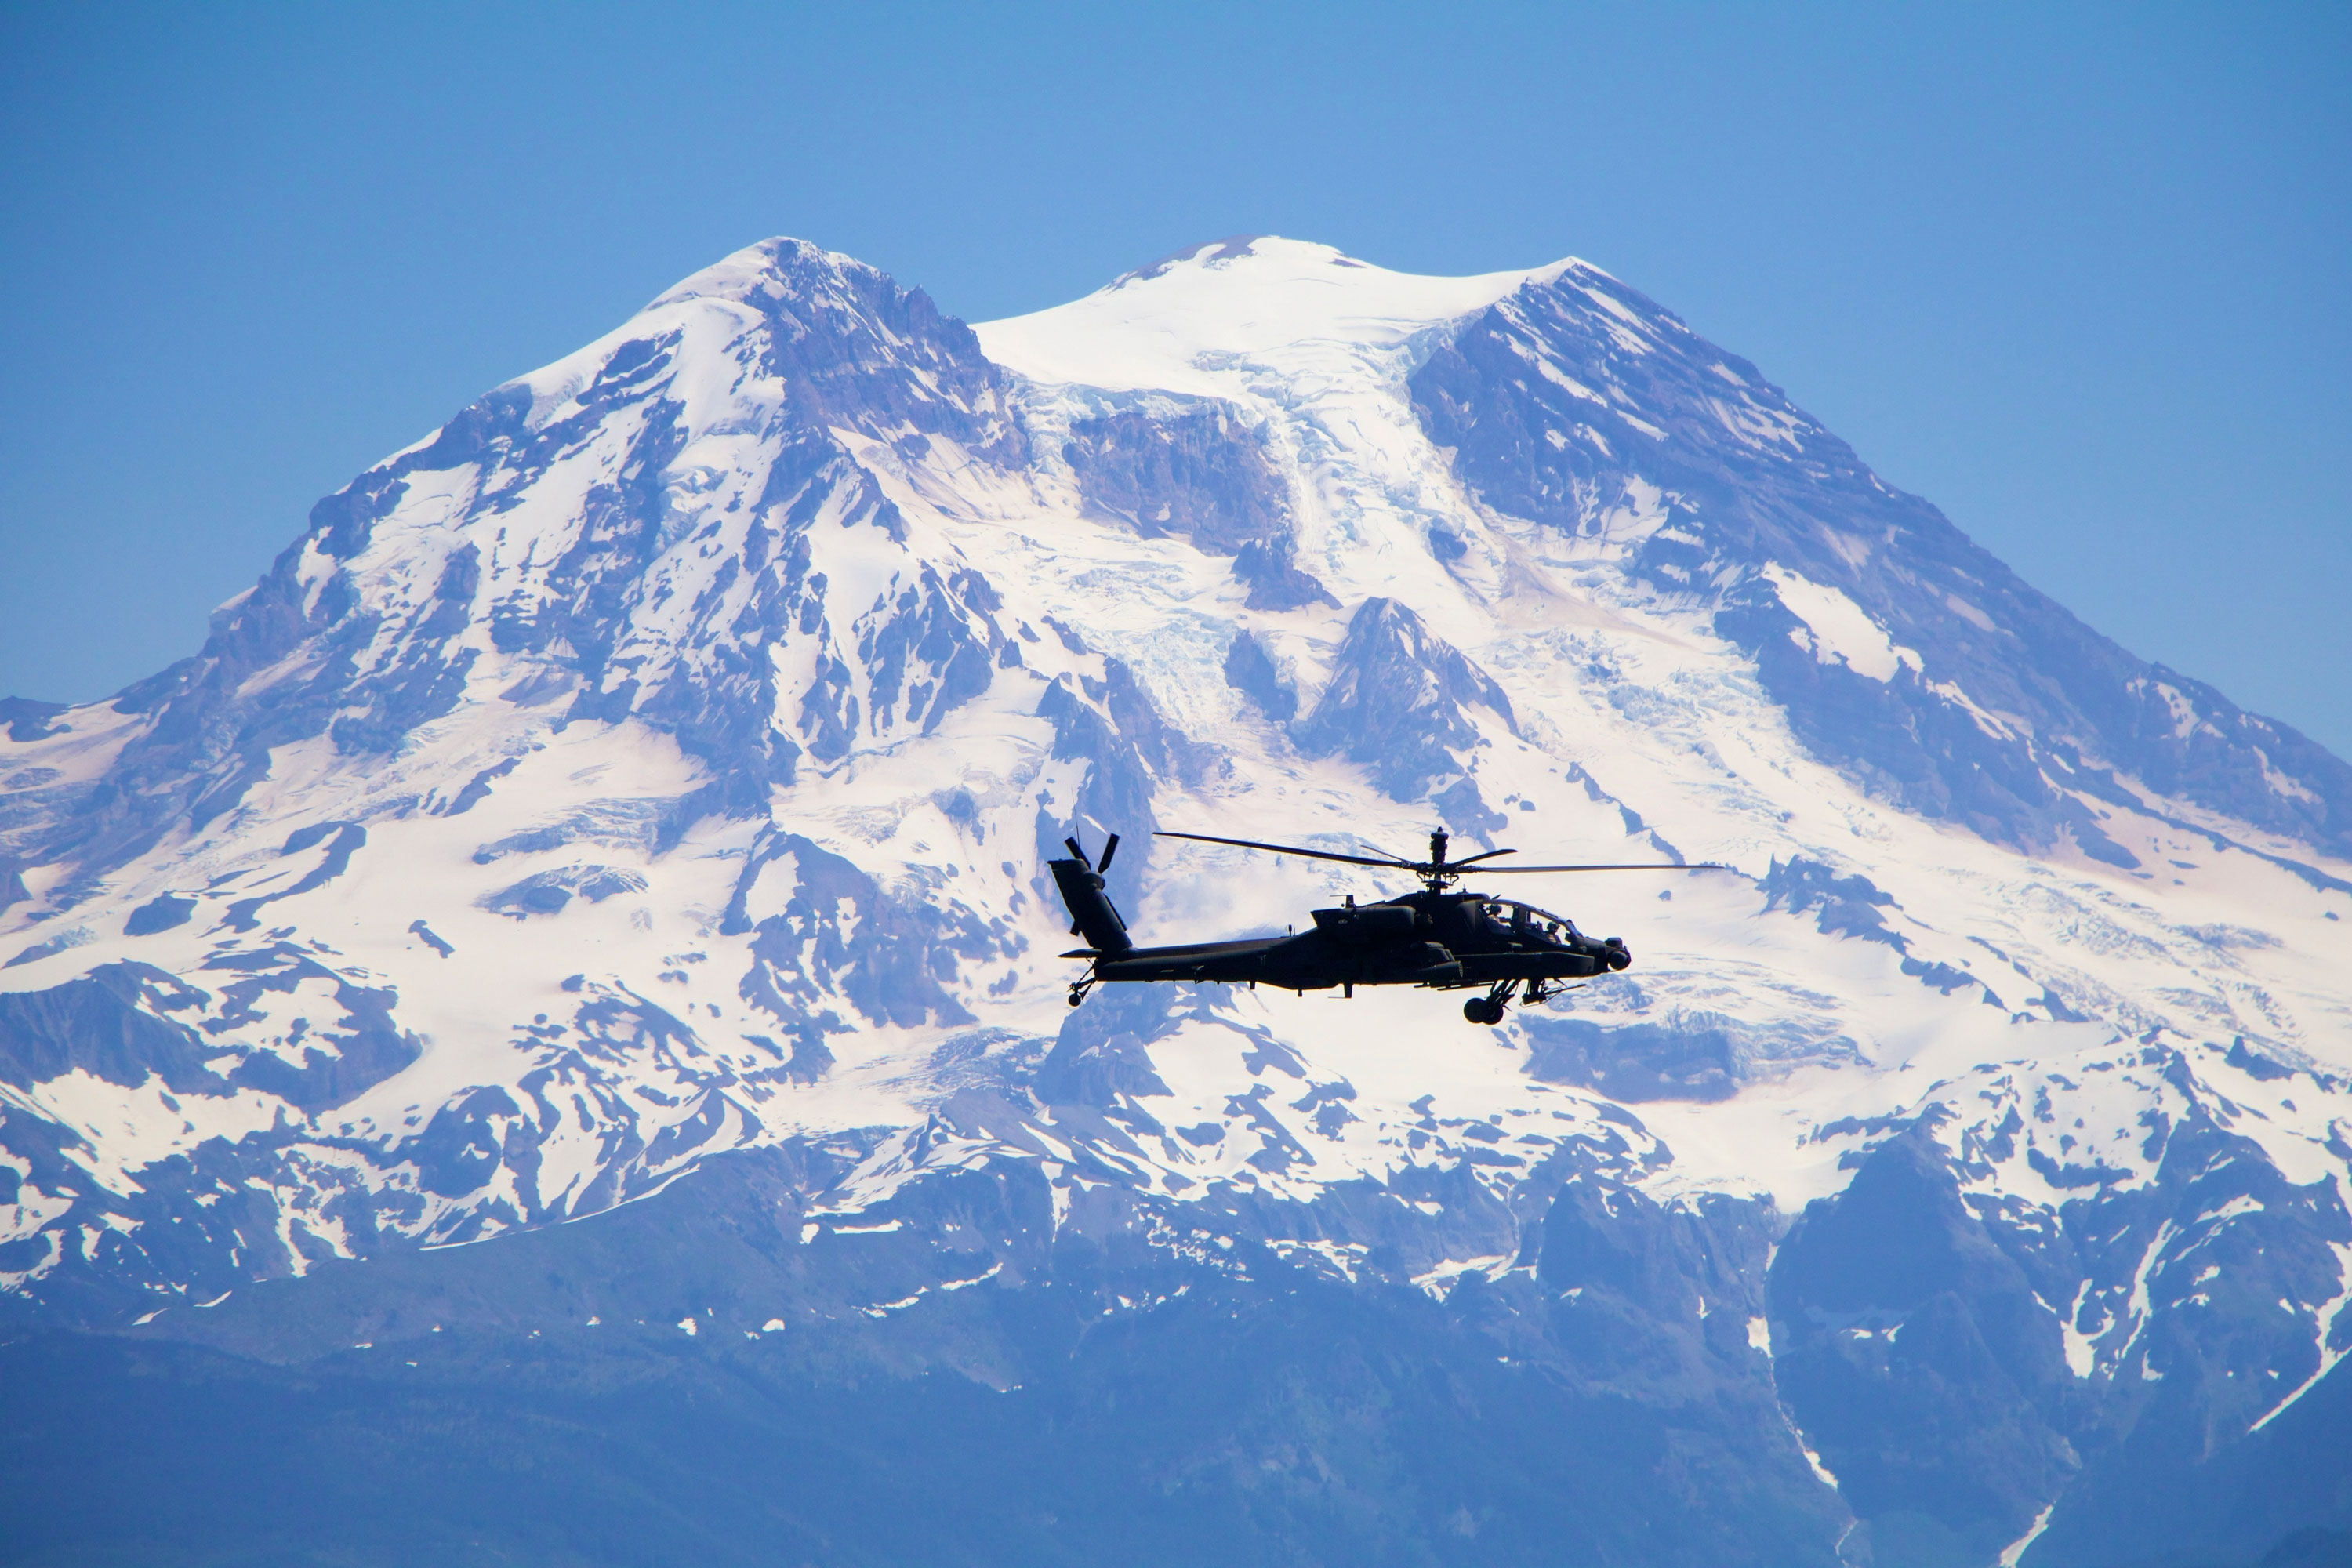 New Apache Program on Schedule in Spite of COVID-19, Army Says